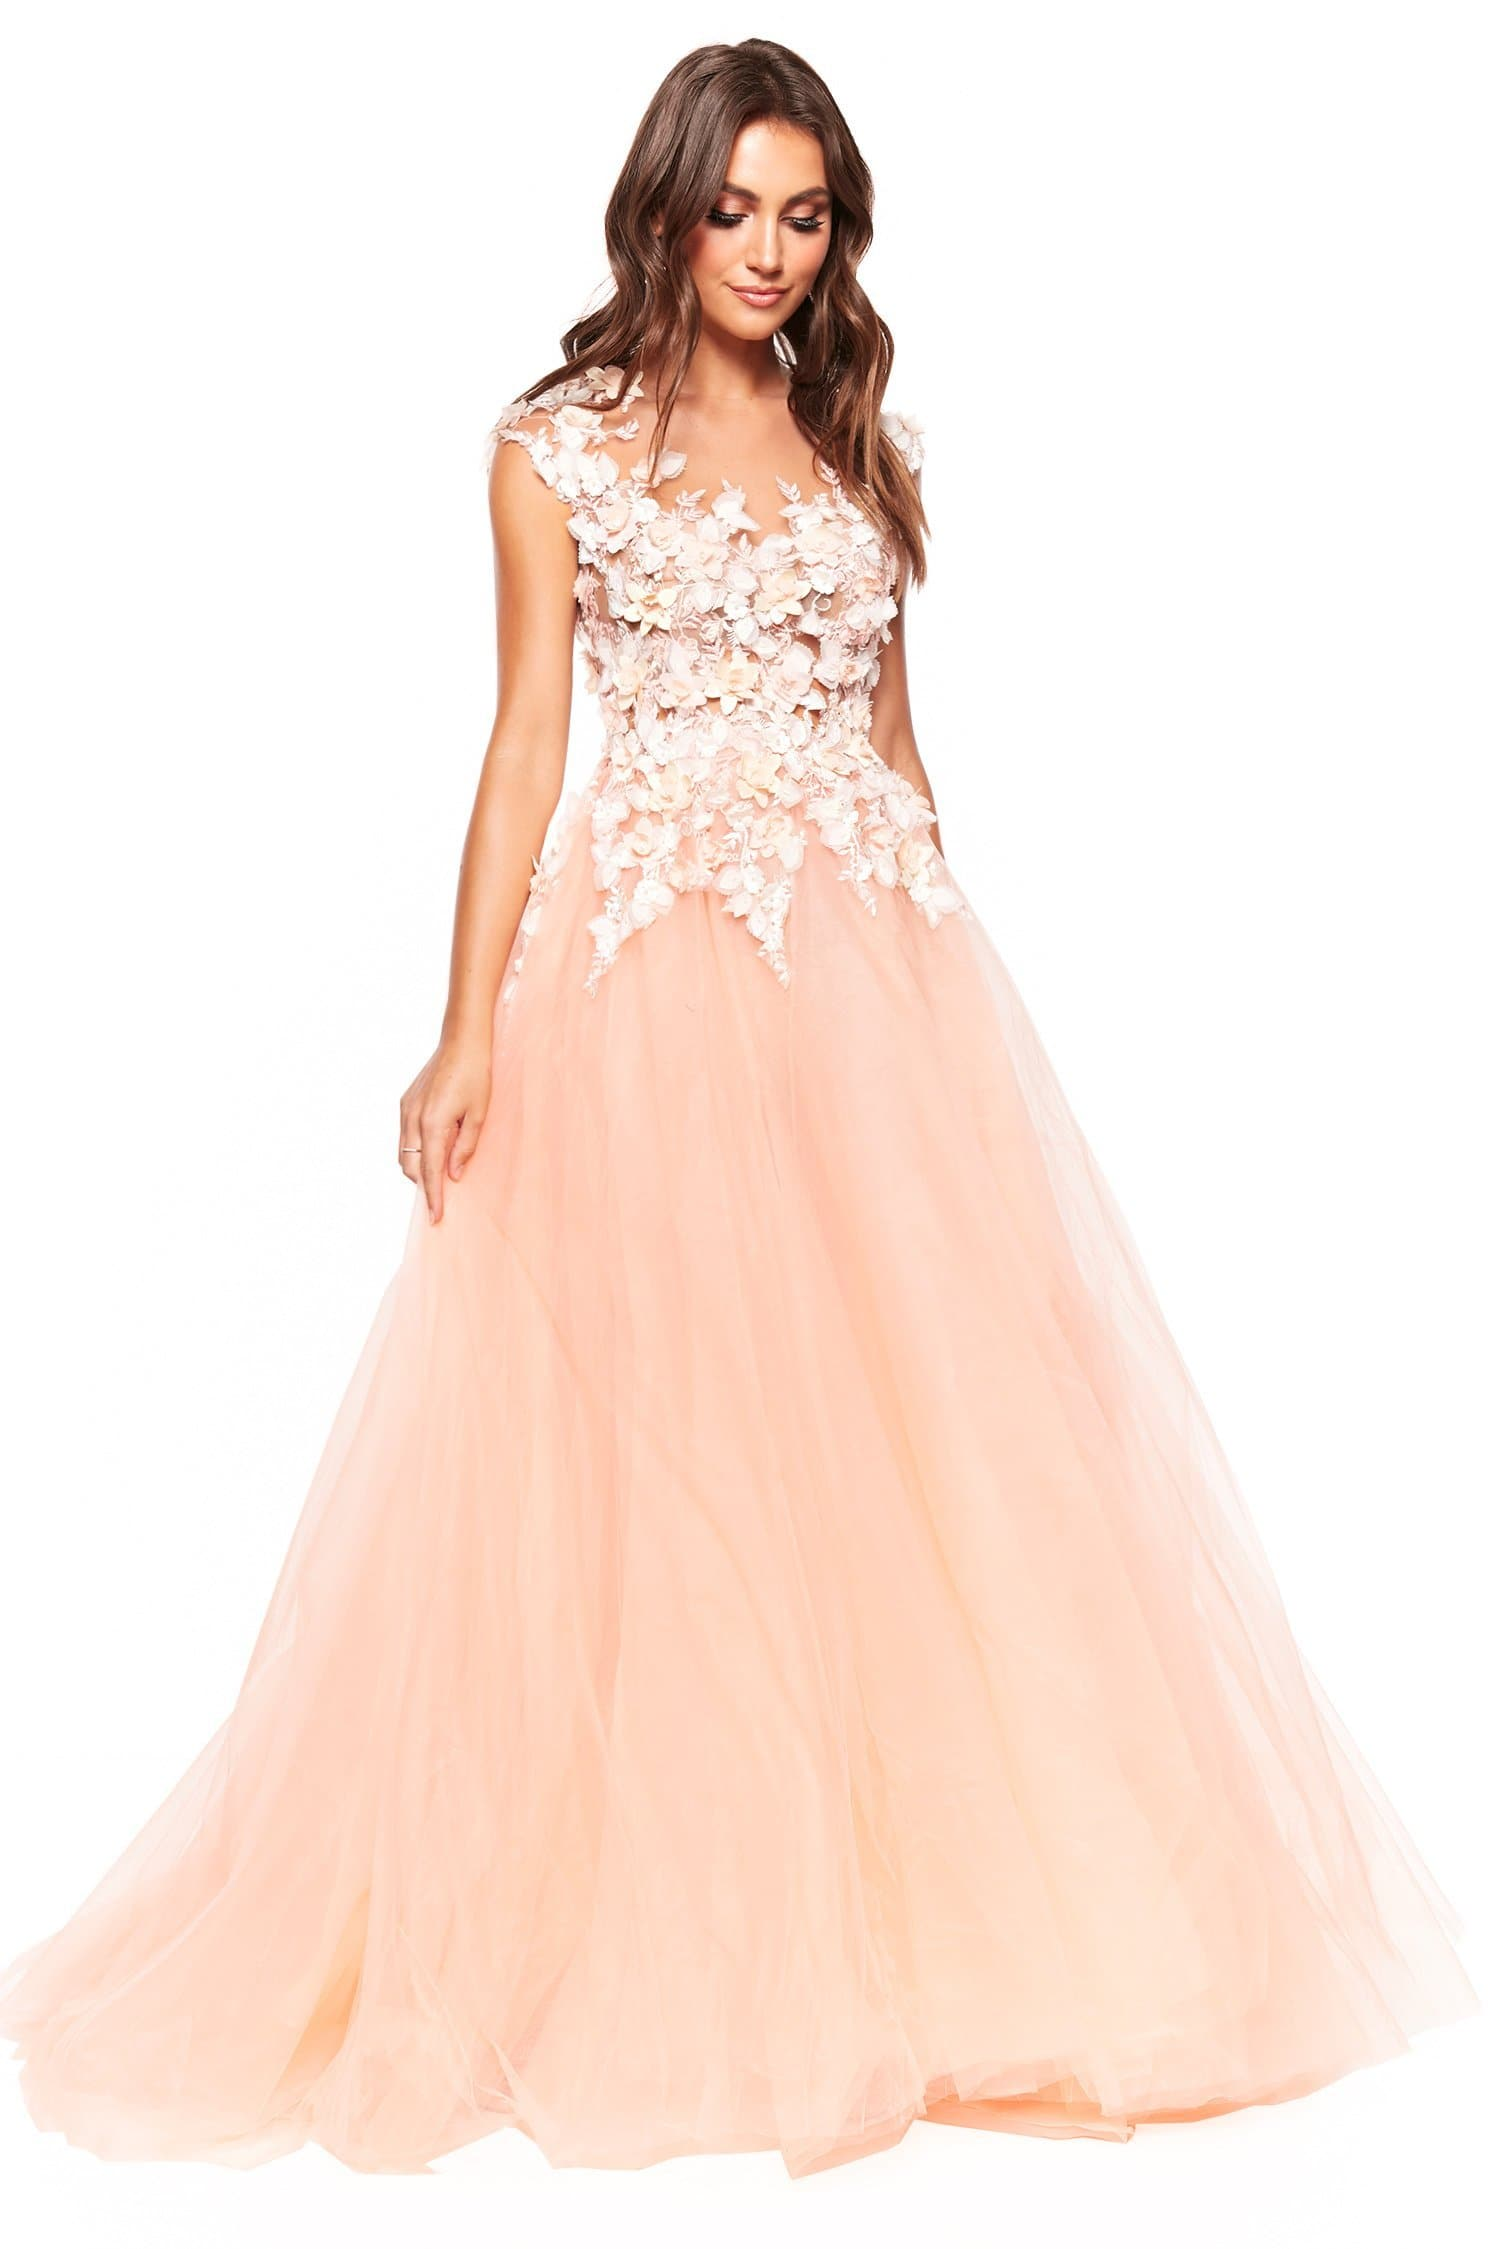 A&N Luxe Ivelina - Peach Tulle Gown with Detailed Floral Bodice